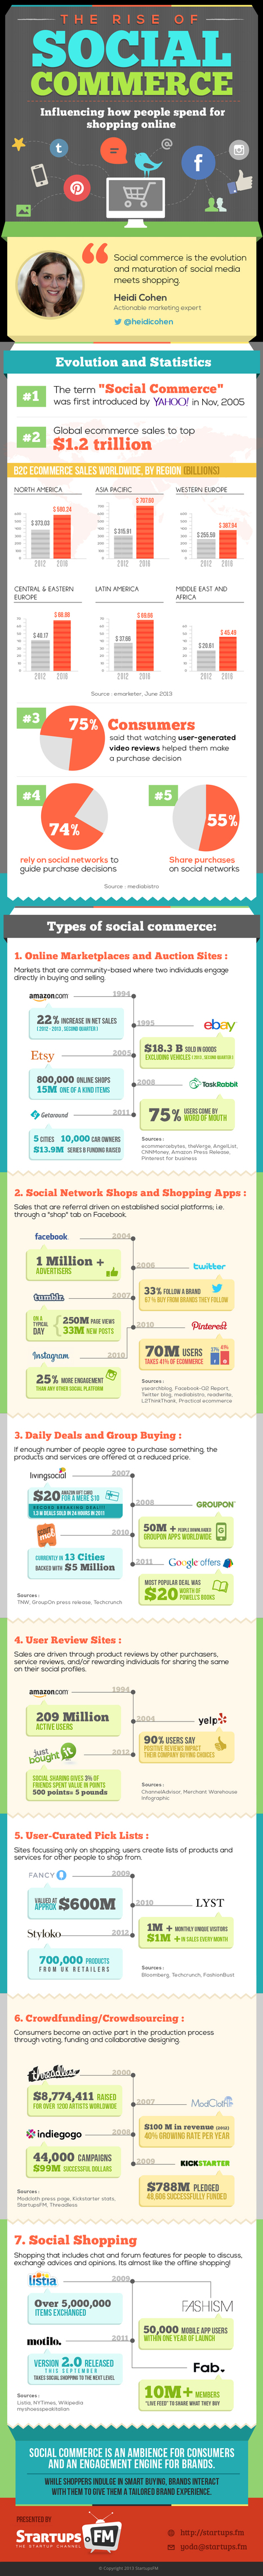 The Rise Of Social Commerce [INFOGRAPHIC] - AllTwitter | The Daily Infograph by Tomas Jansma | Scoop.it